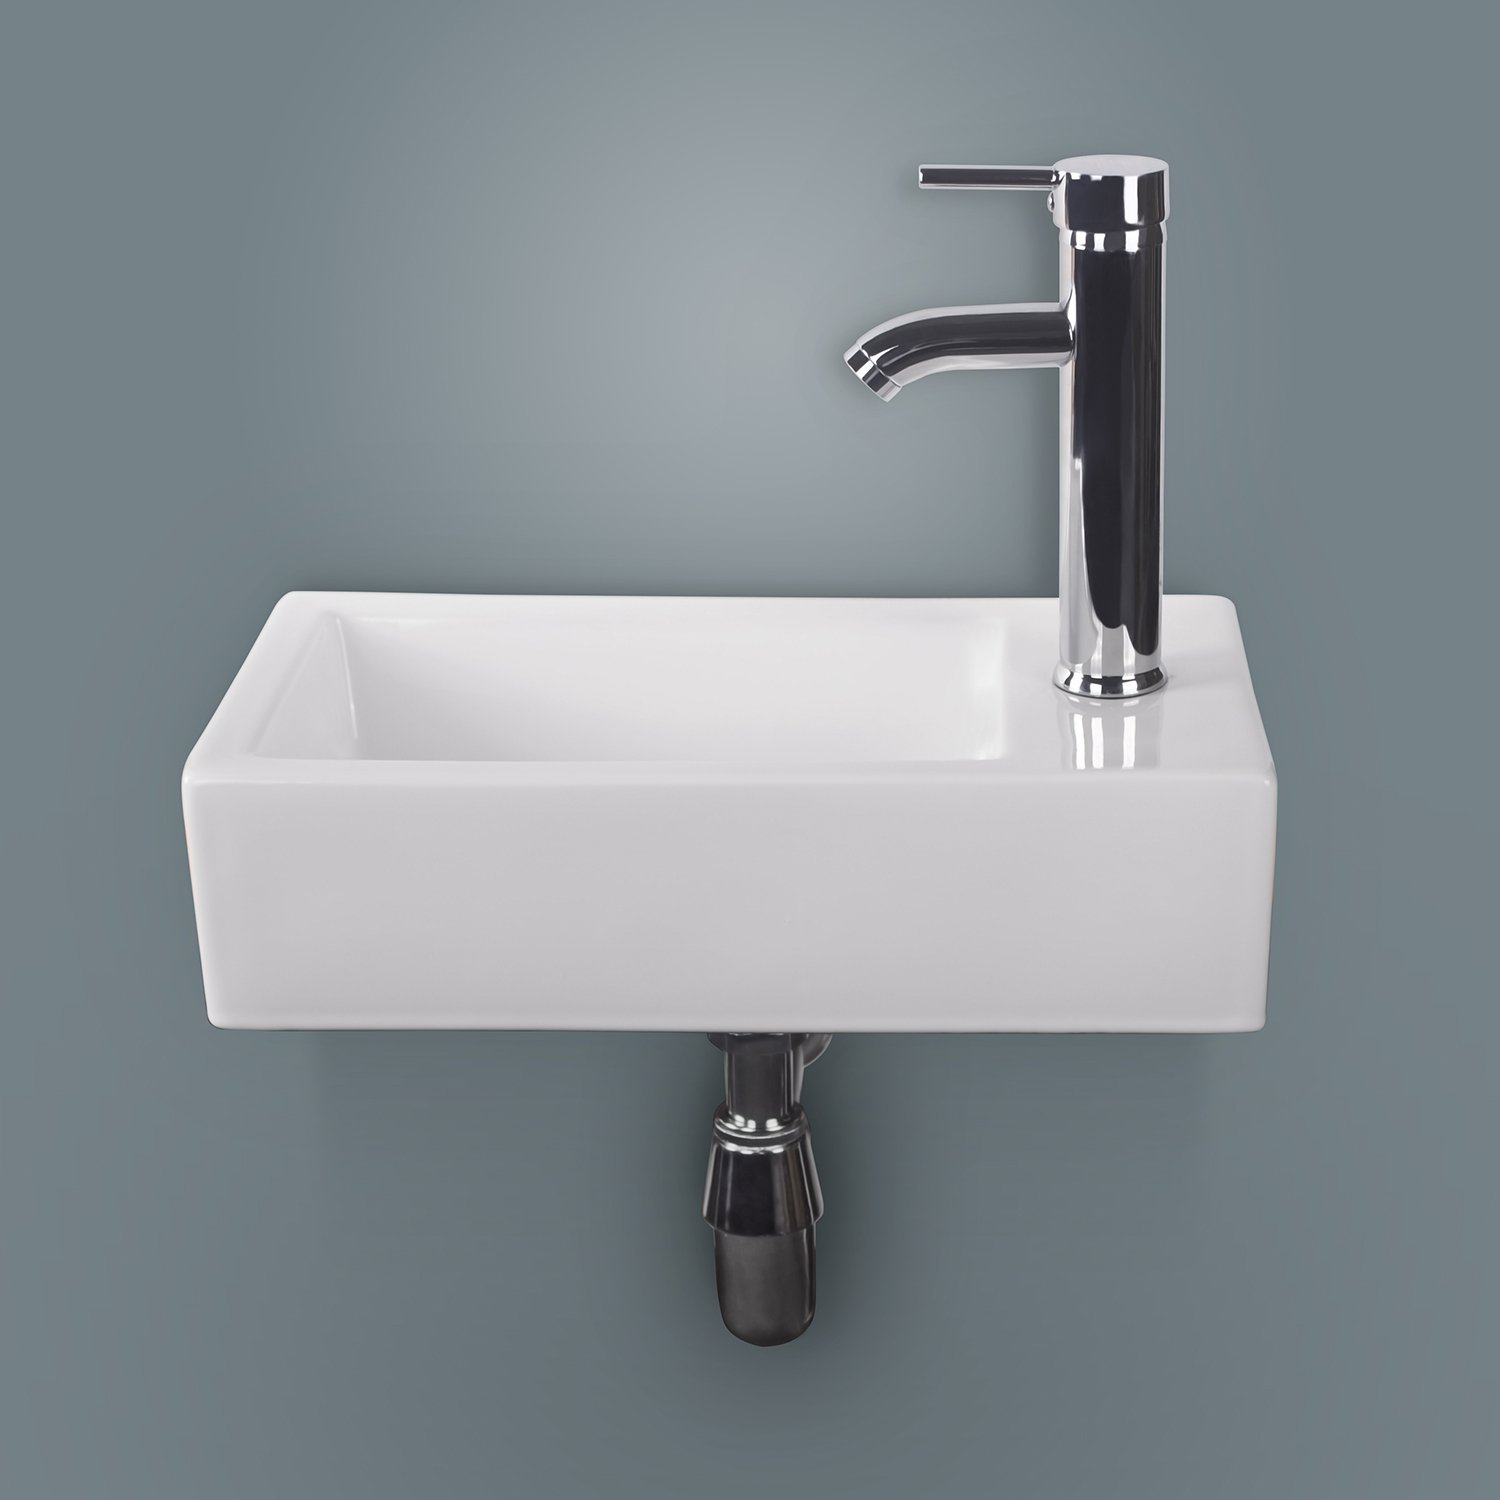 100 sink with two faucets bathroom console bathroom vanity